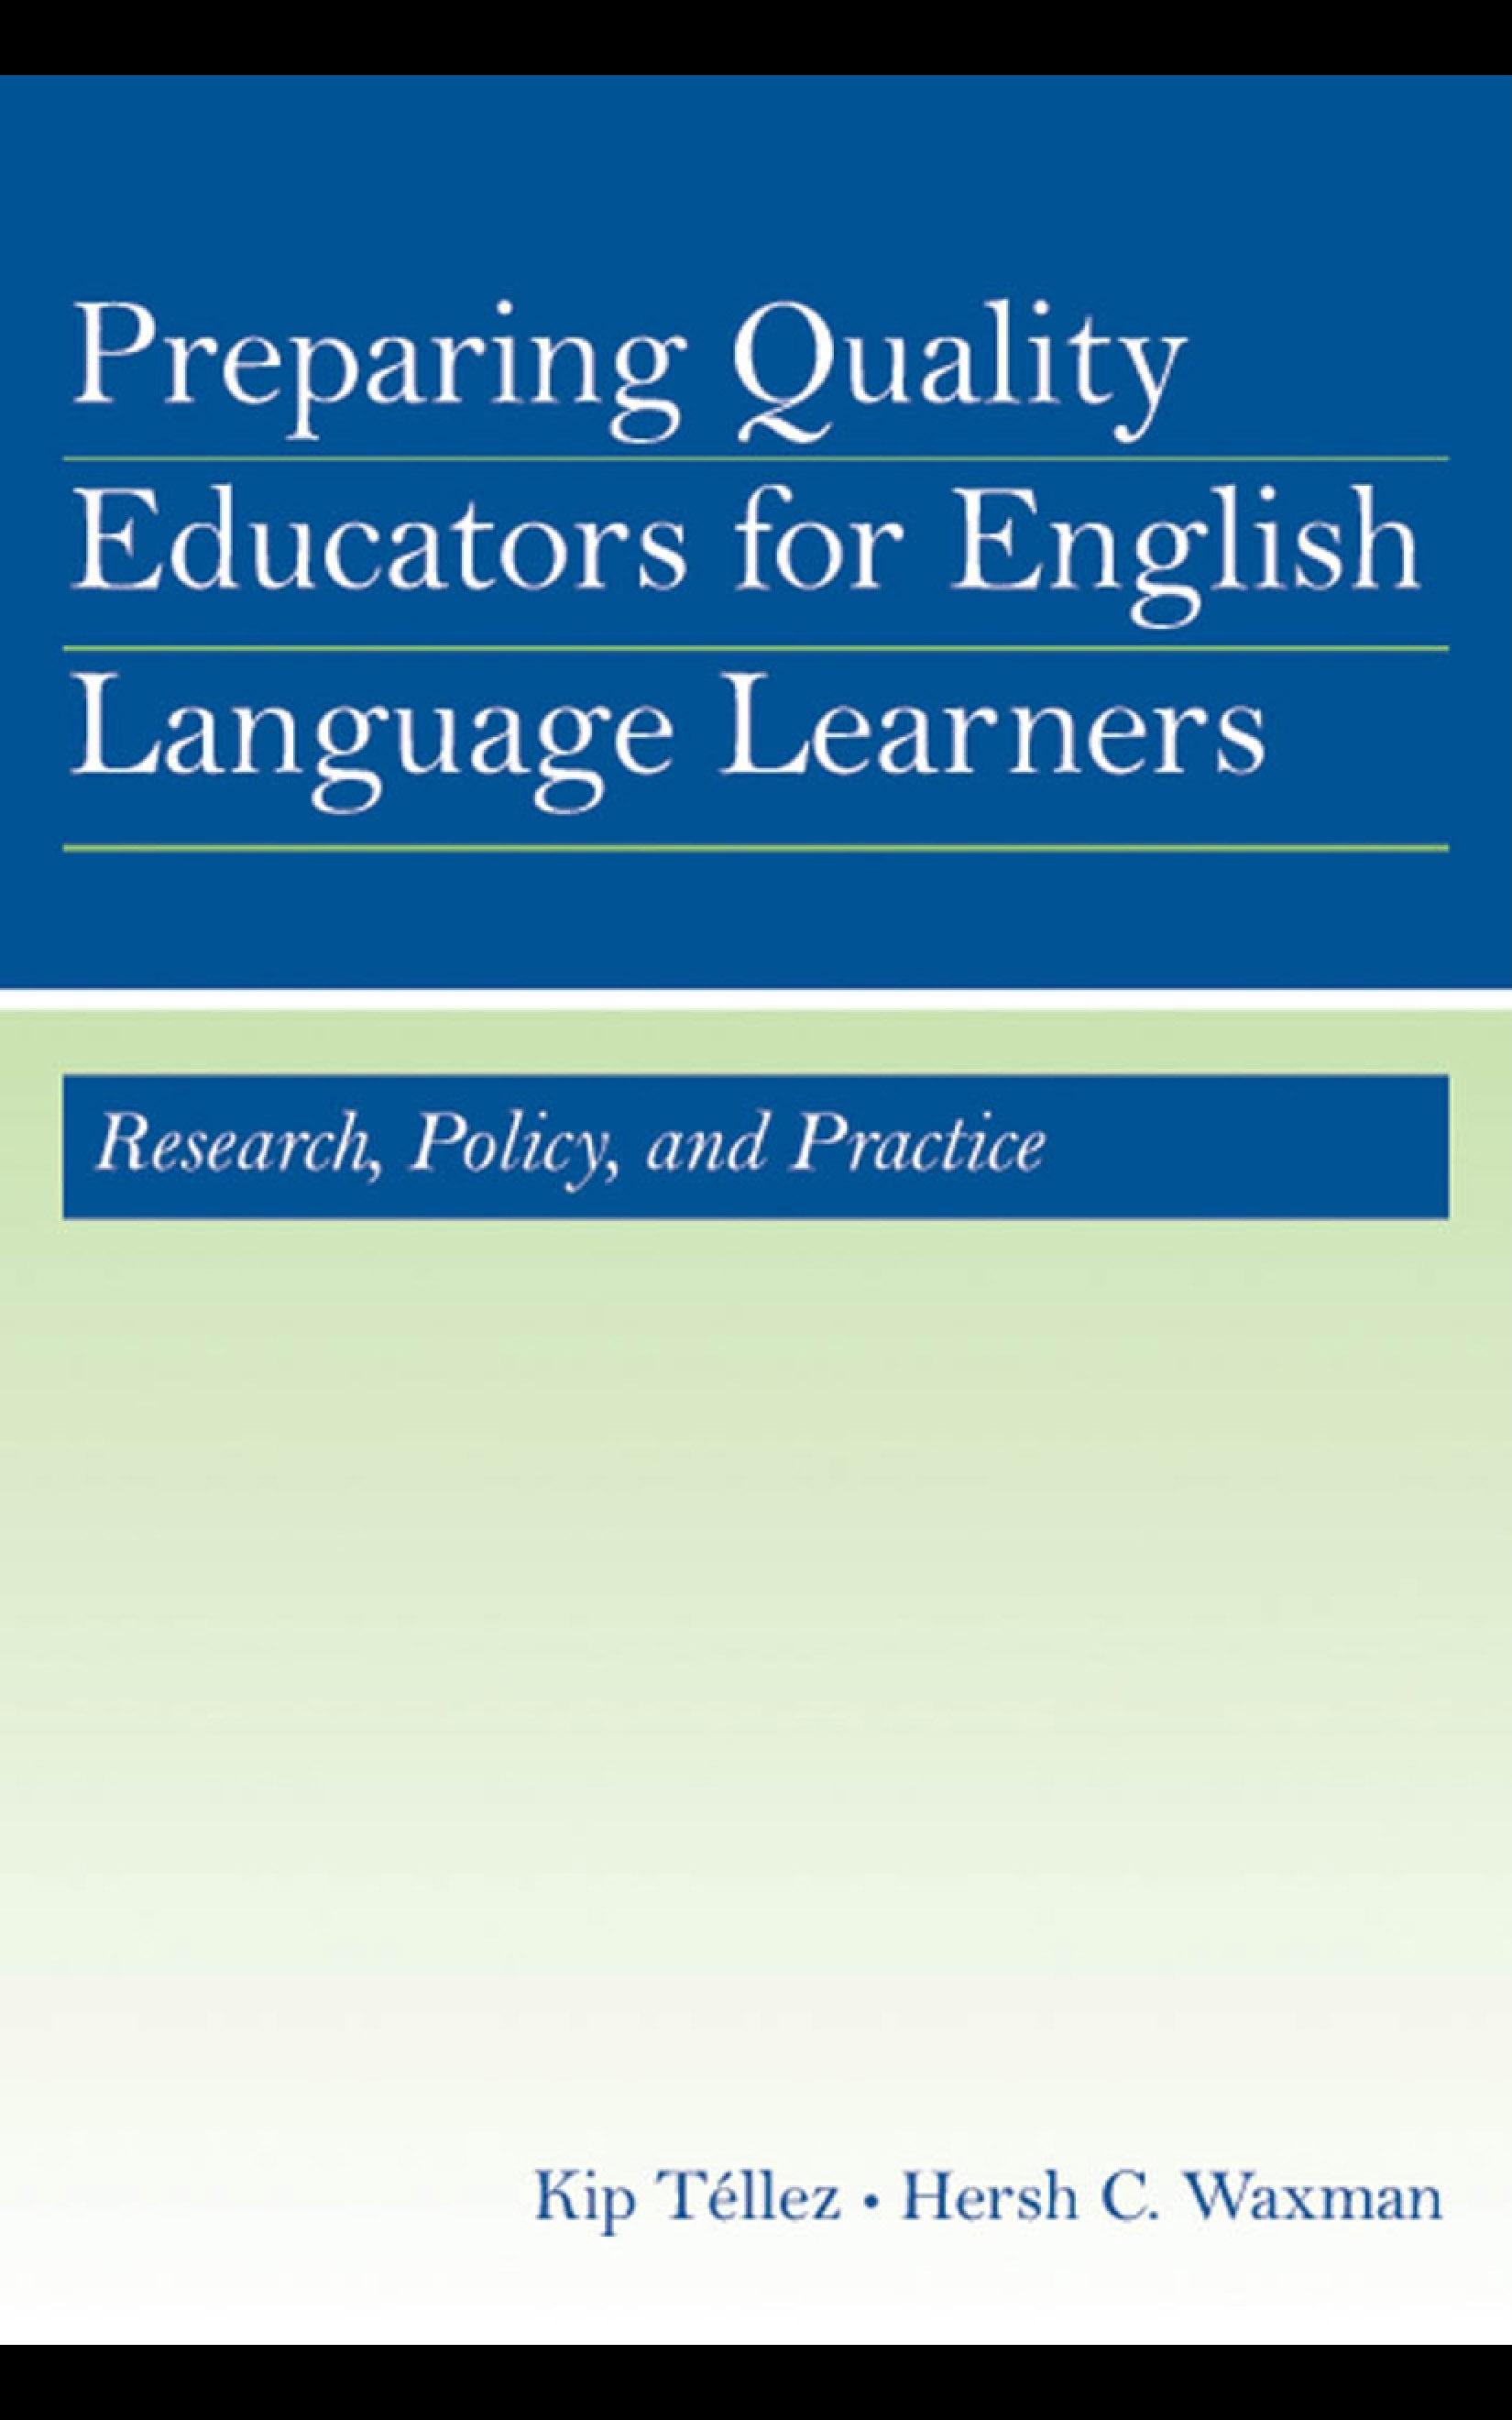 Preparing Quality Educators for English Language Learners: Research, Policy, and Practice EB9781410617347